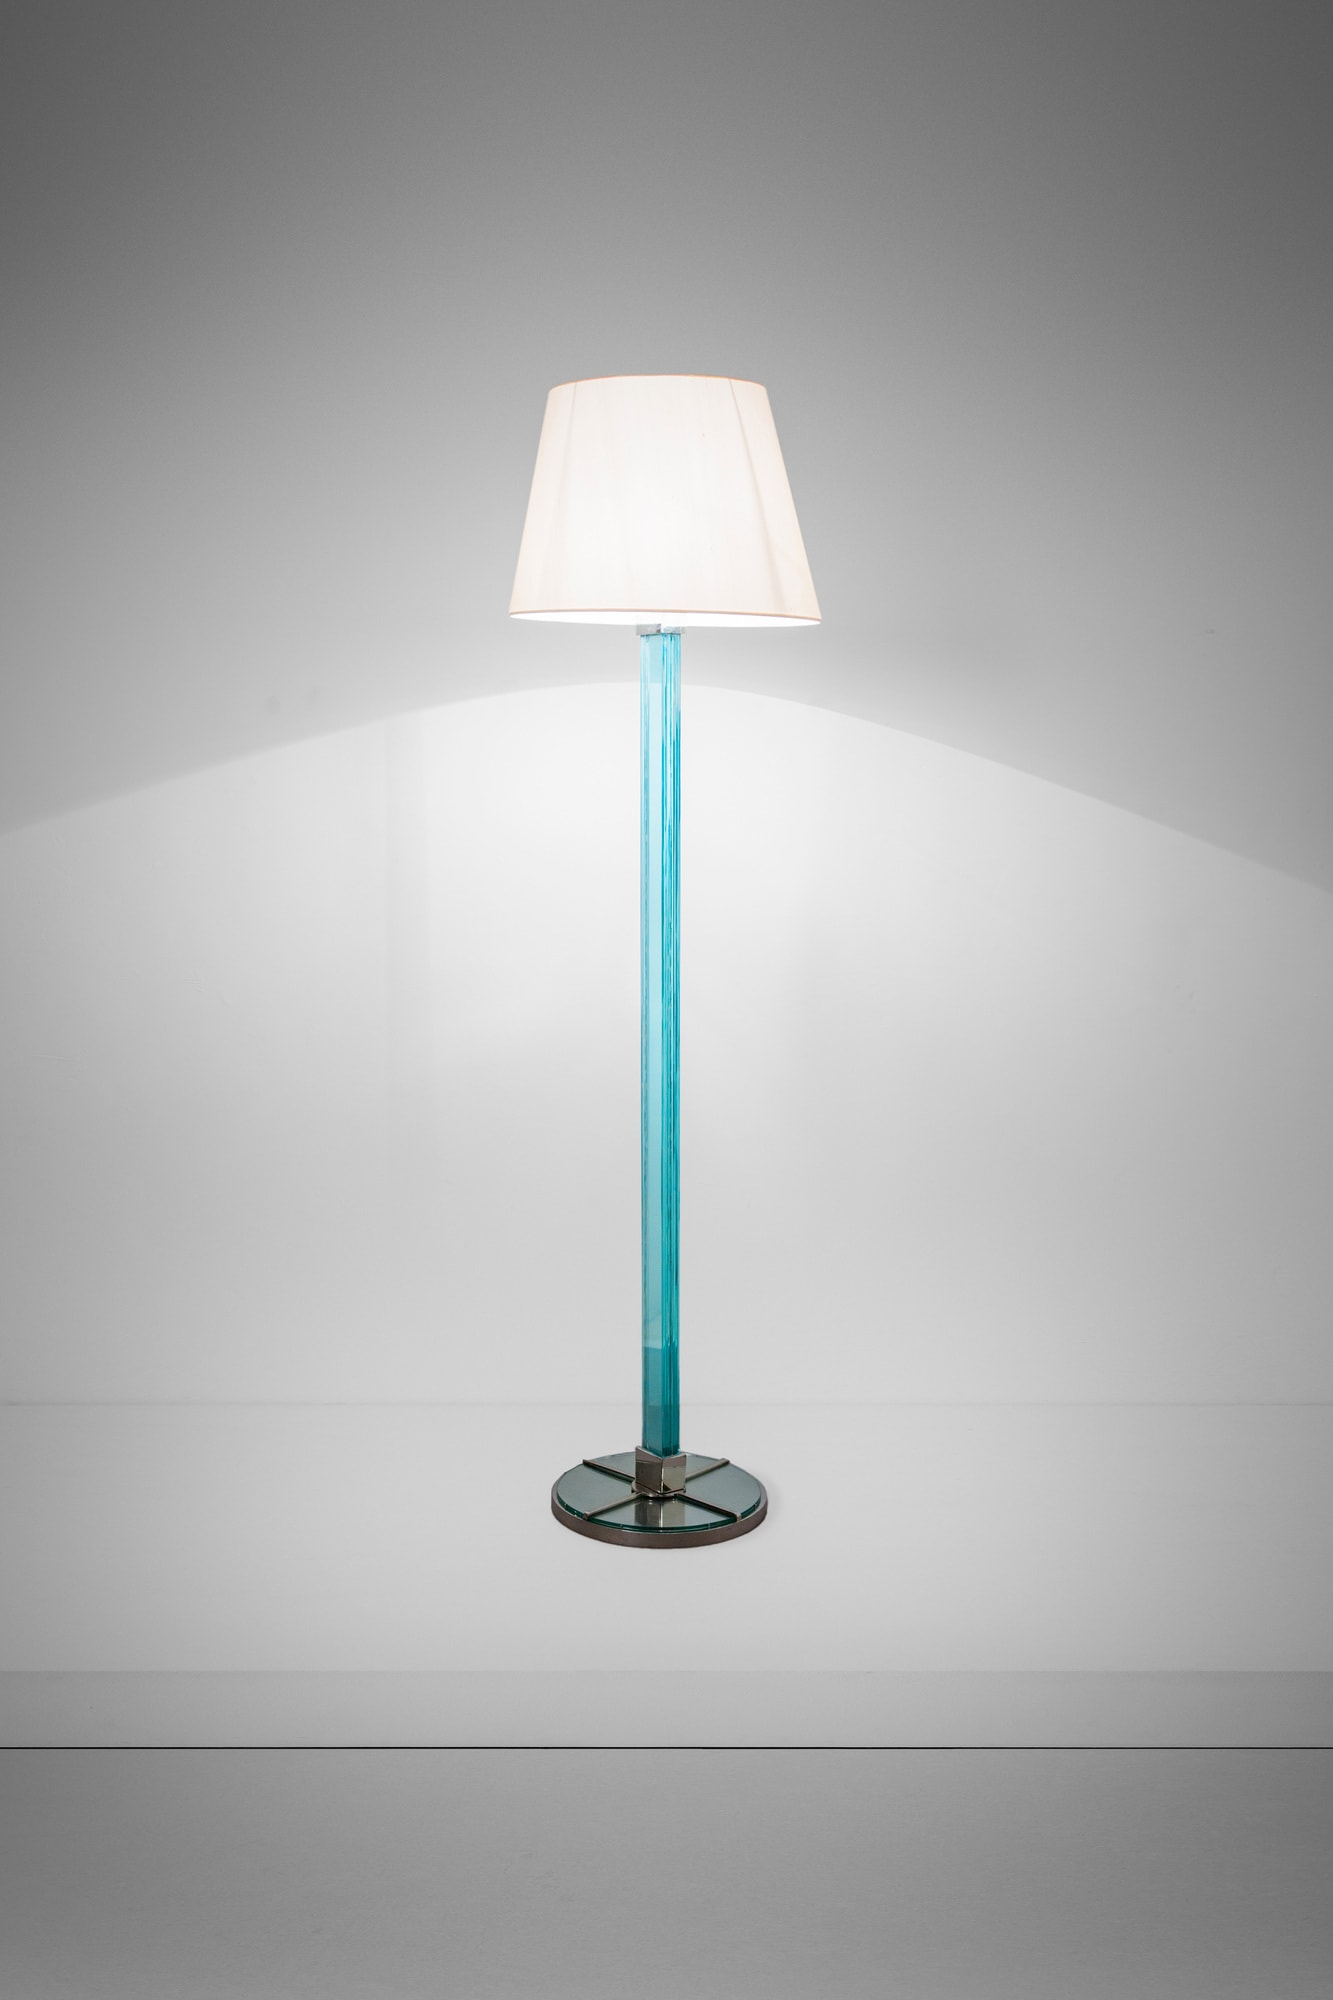 Syrie Maugham, Floor lamp, vue 01